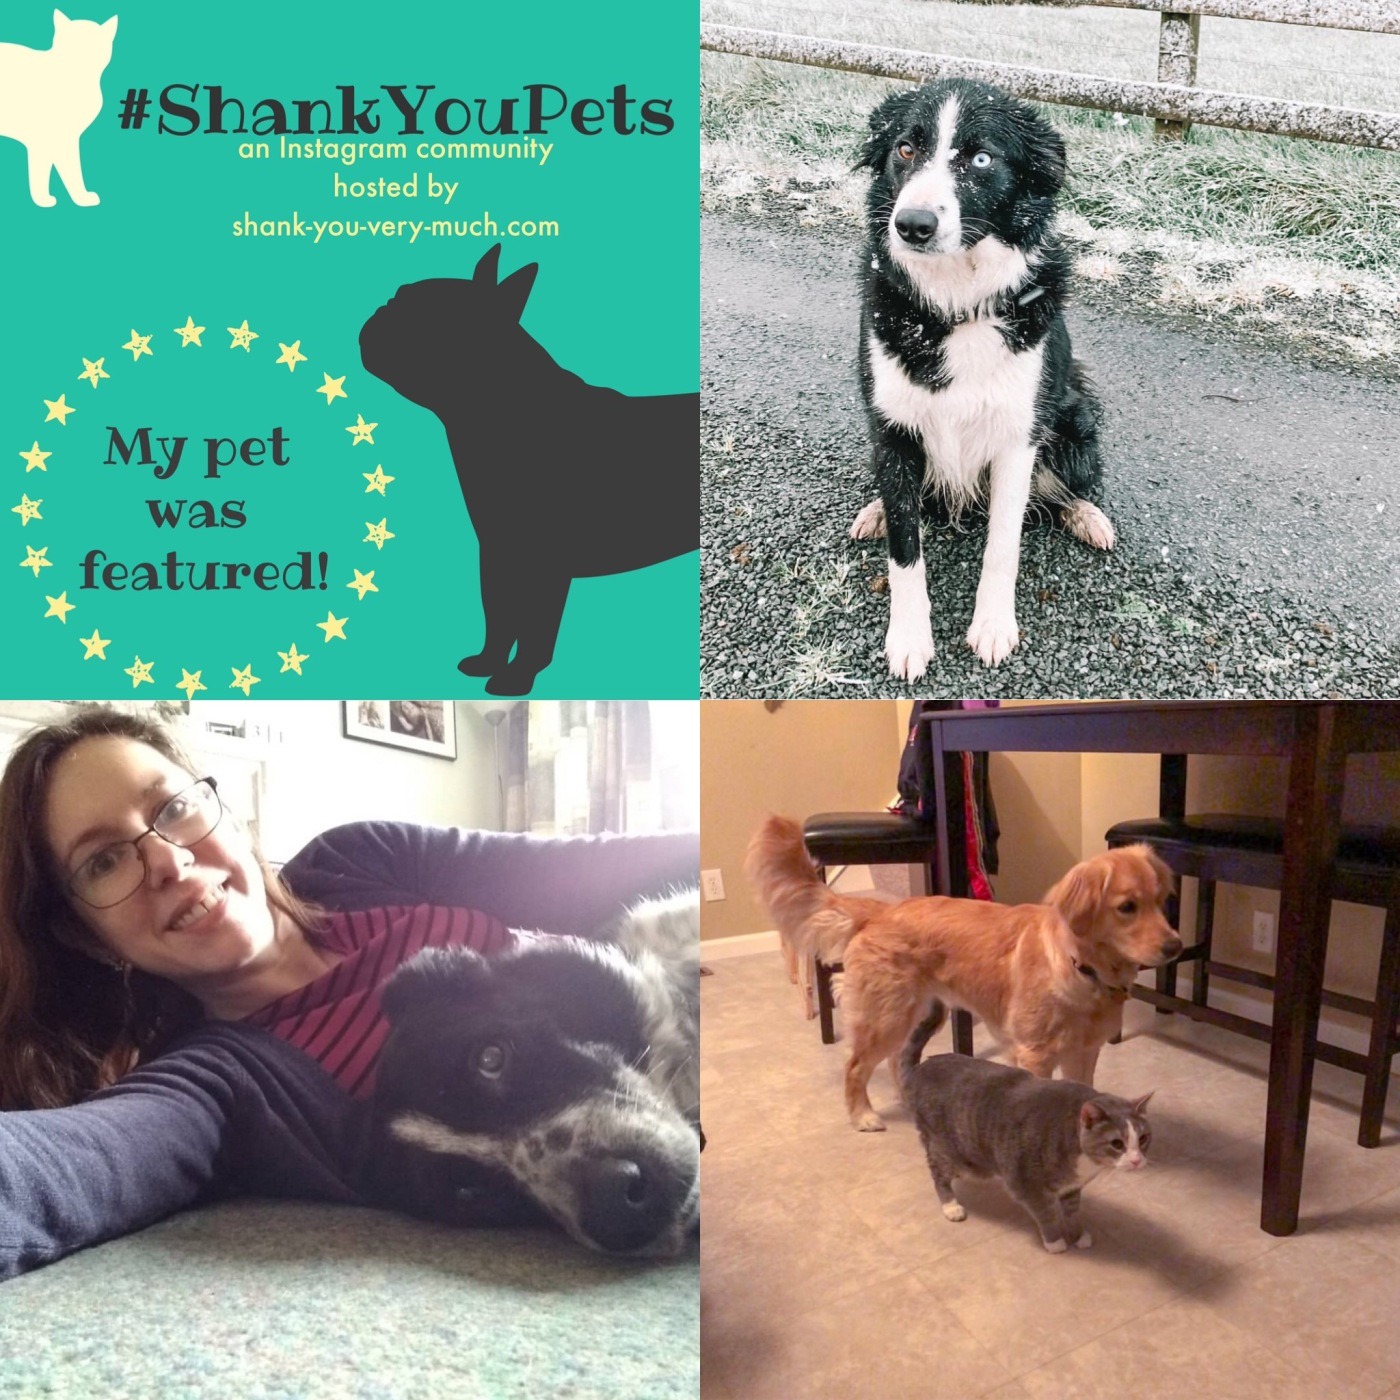 A collage of dog and cat photos